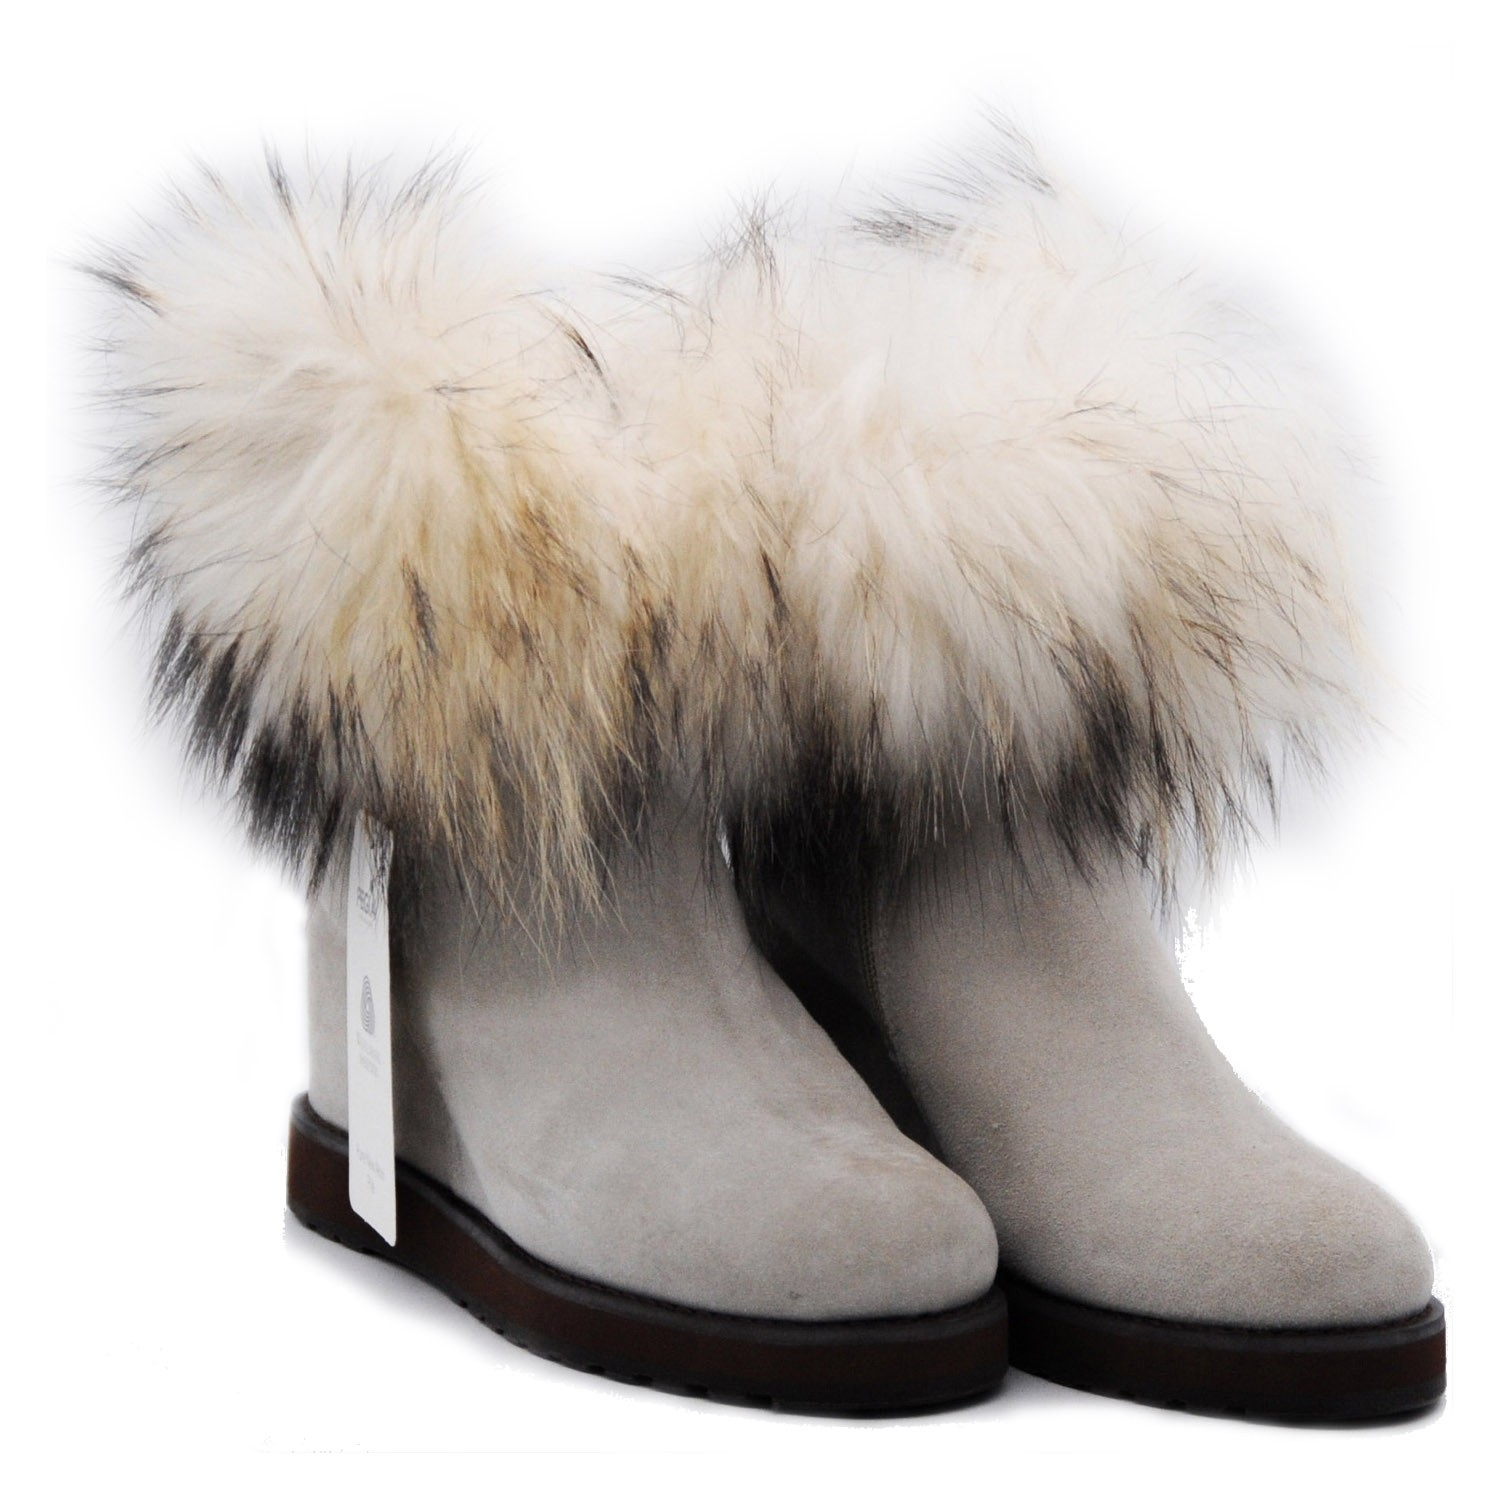 Pegia Suede Beige Ankle Boots with Inner Raised Heel and Fur Trim